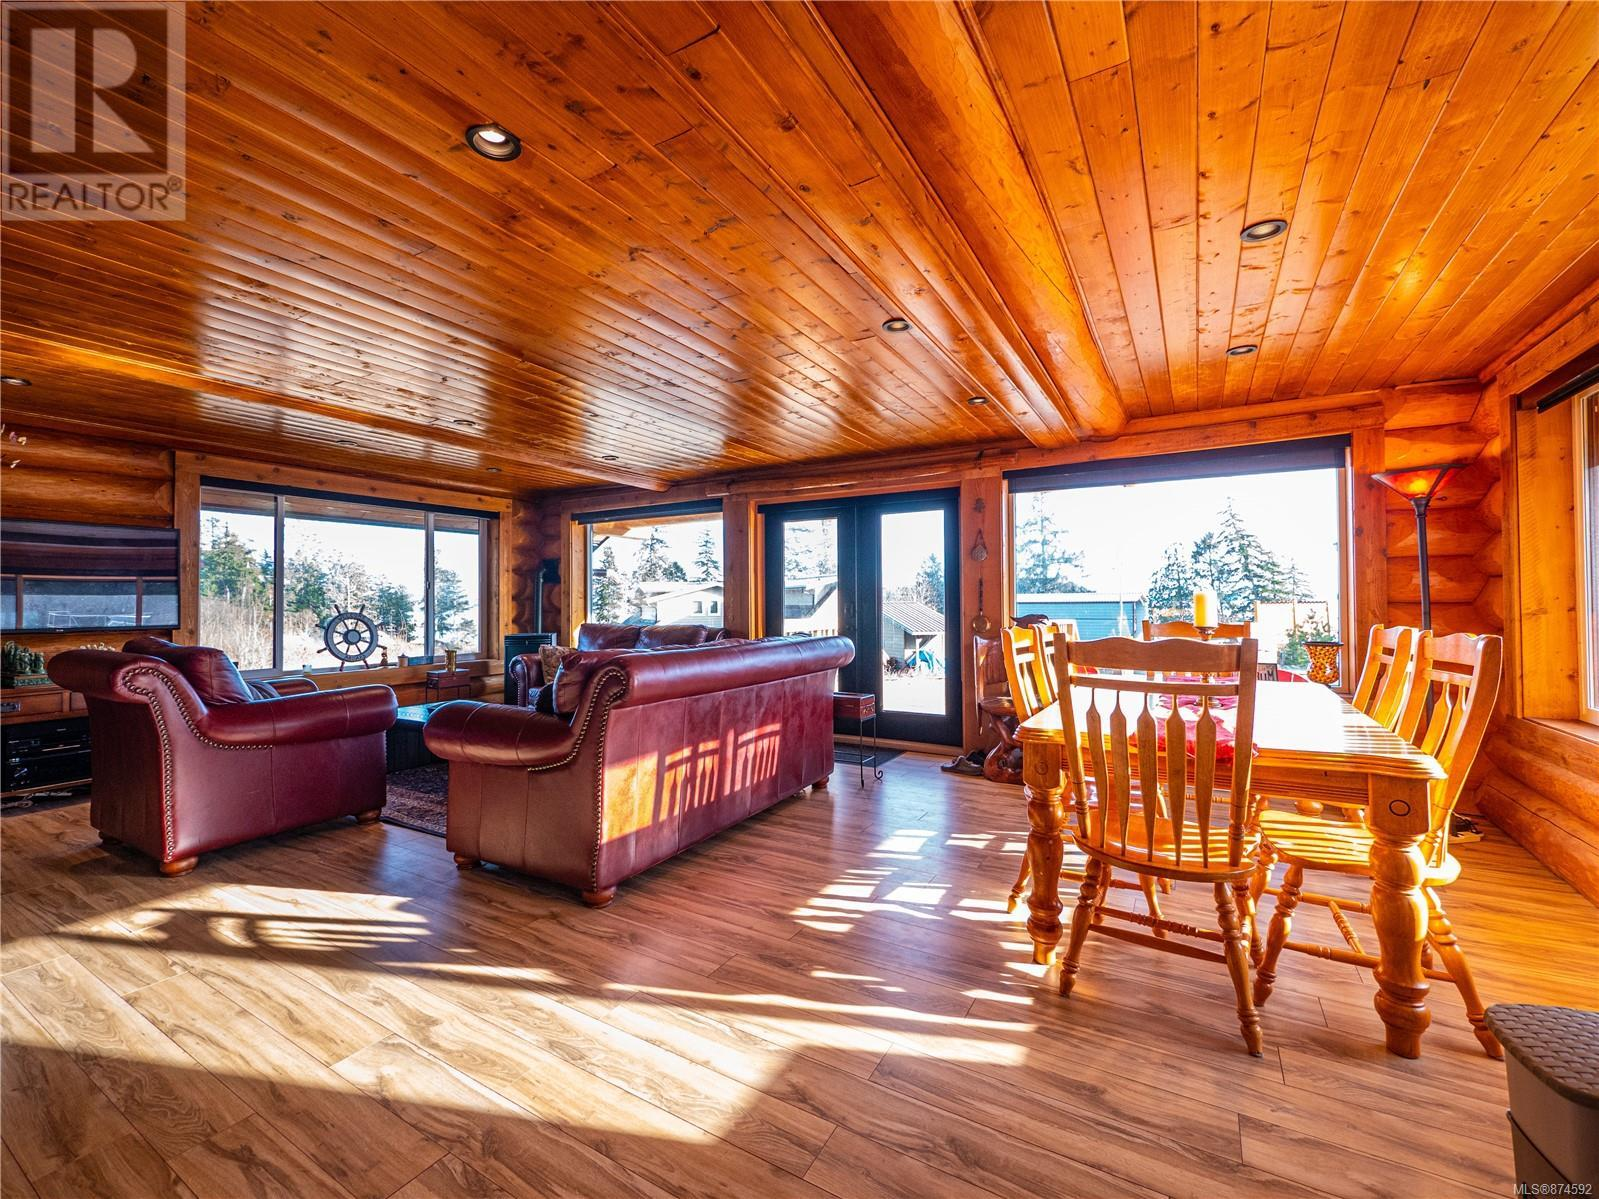 MLS® #874592 - Ucluelet House For sale Image #3